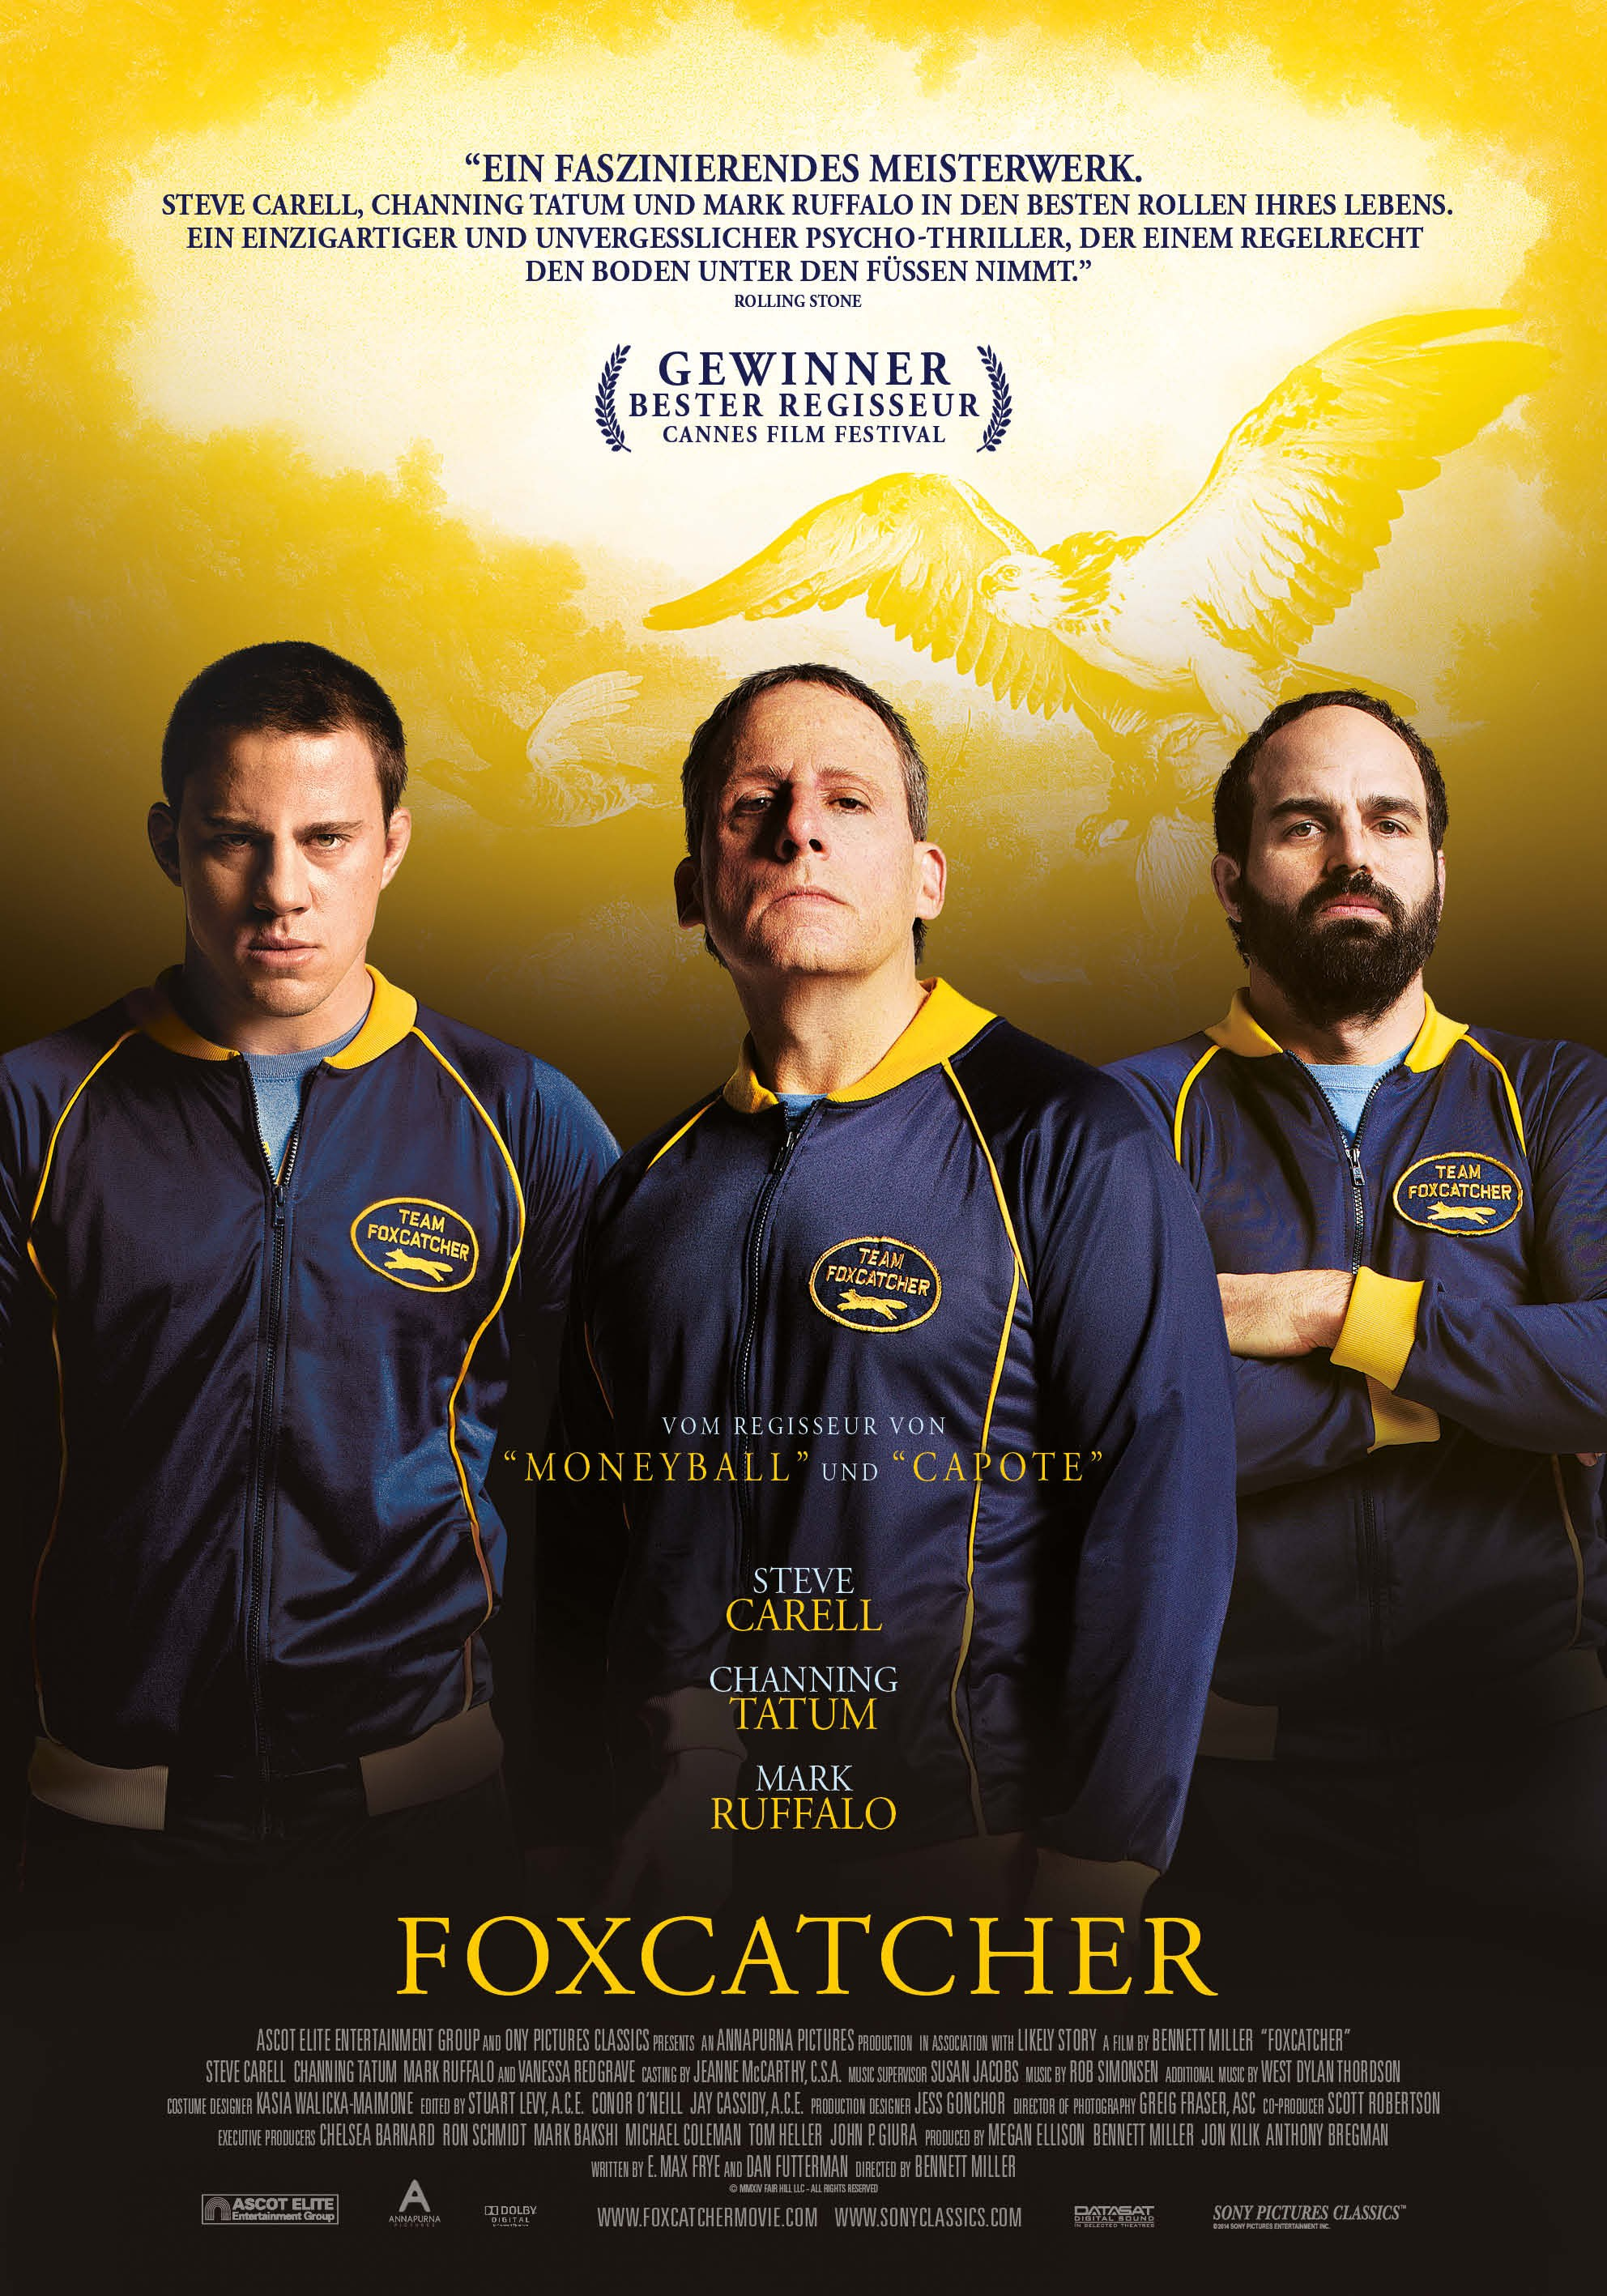 Mega Sized Movie Poster Image for Foxcatcher